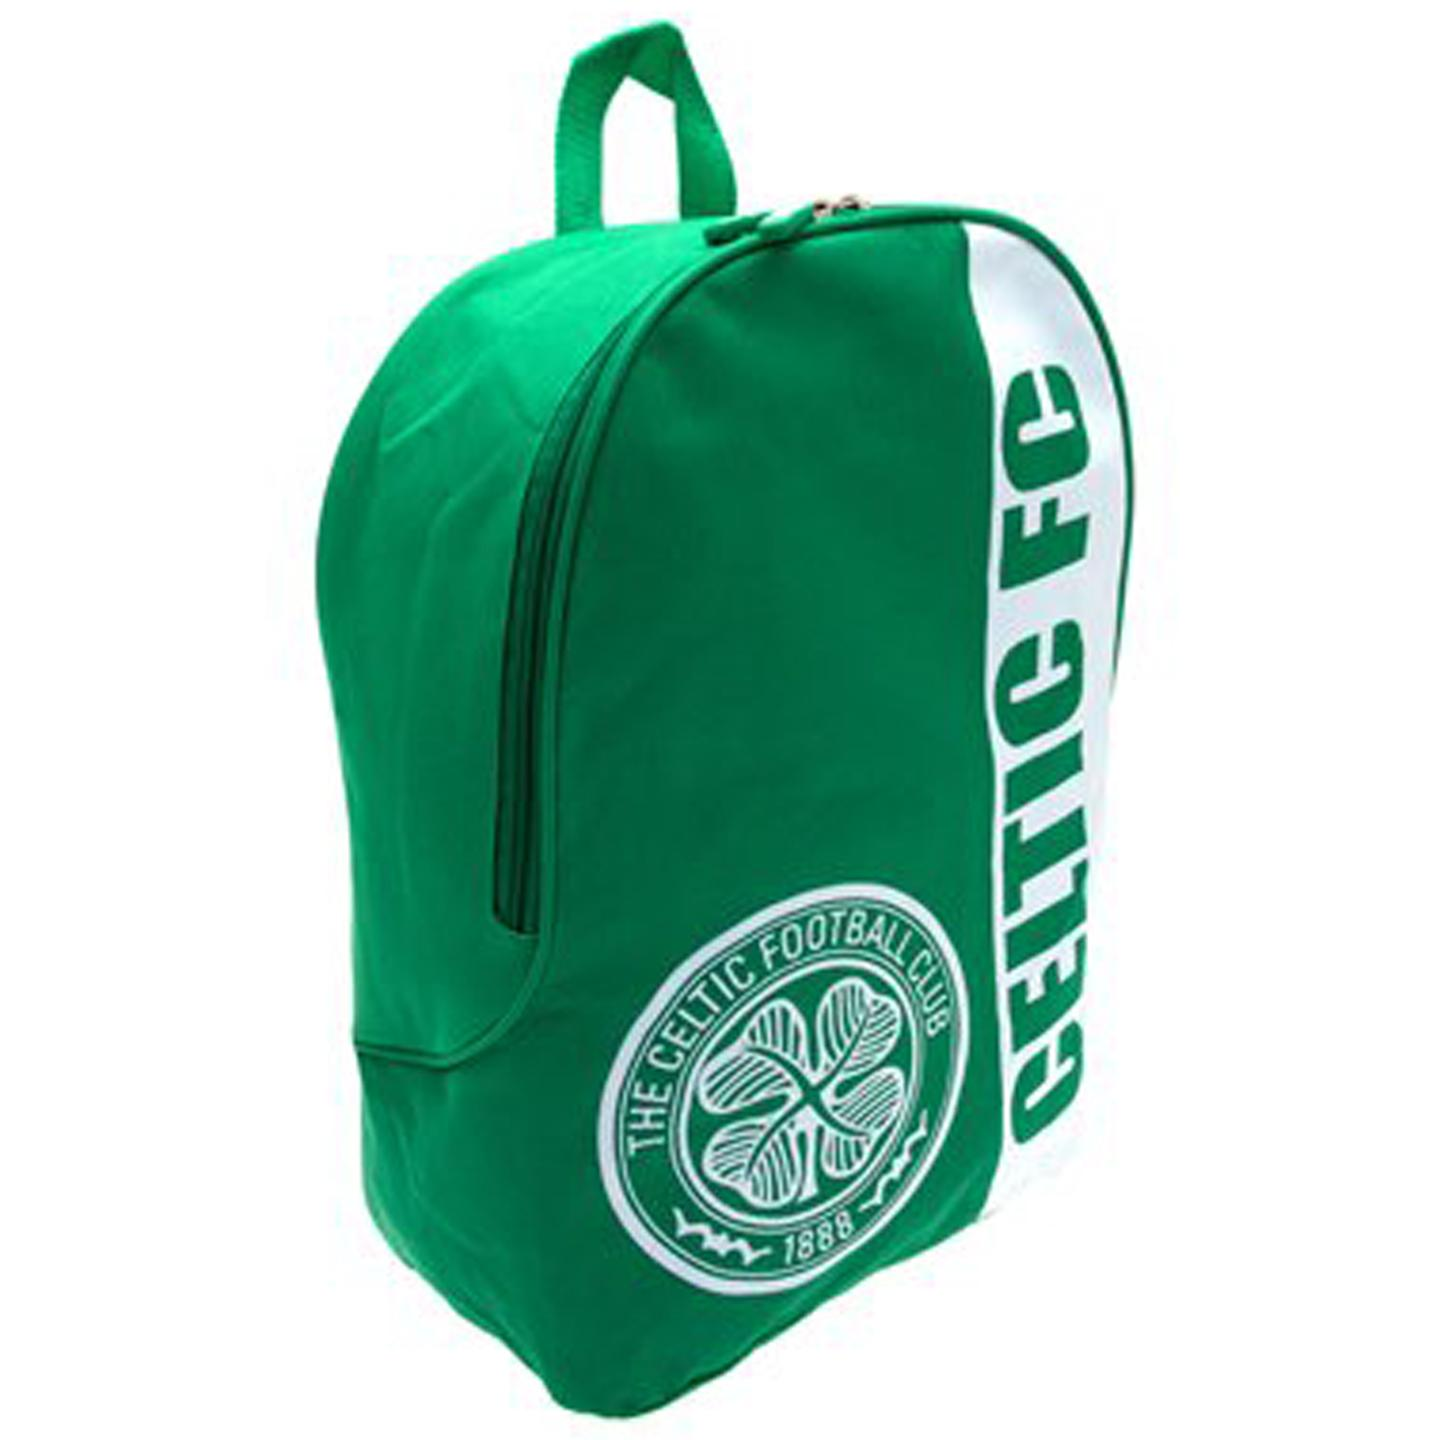 Details about Football Rucksack Backpack School Bag - New and Official ...